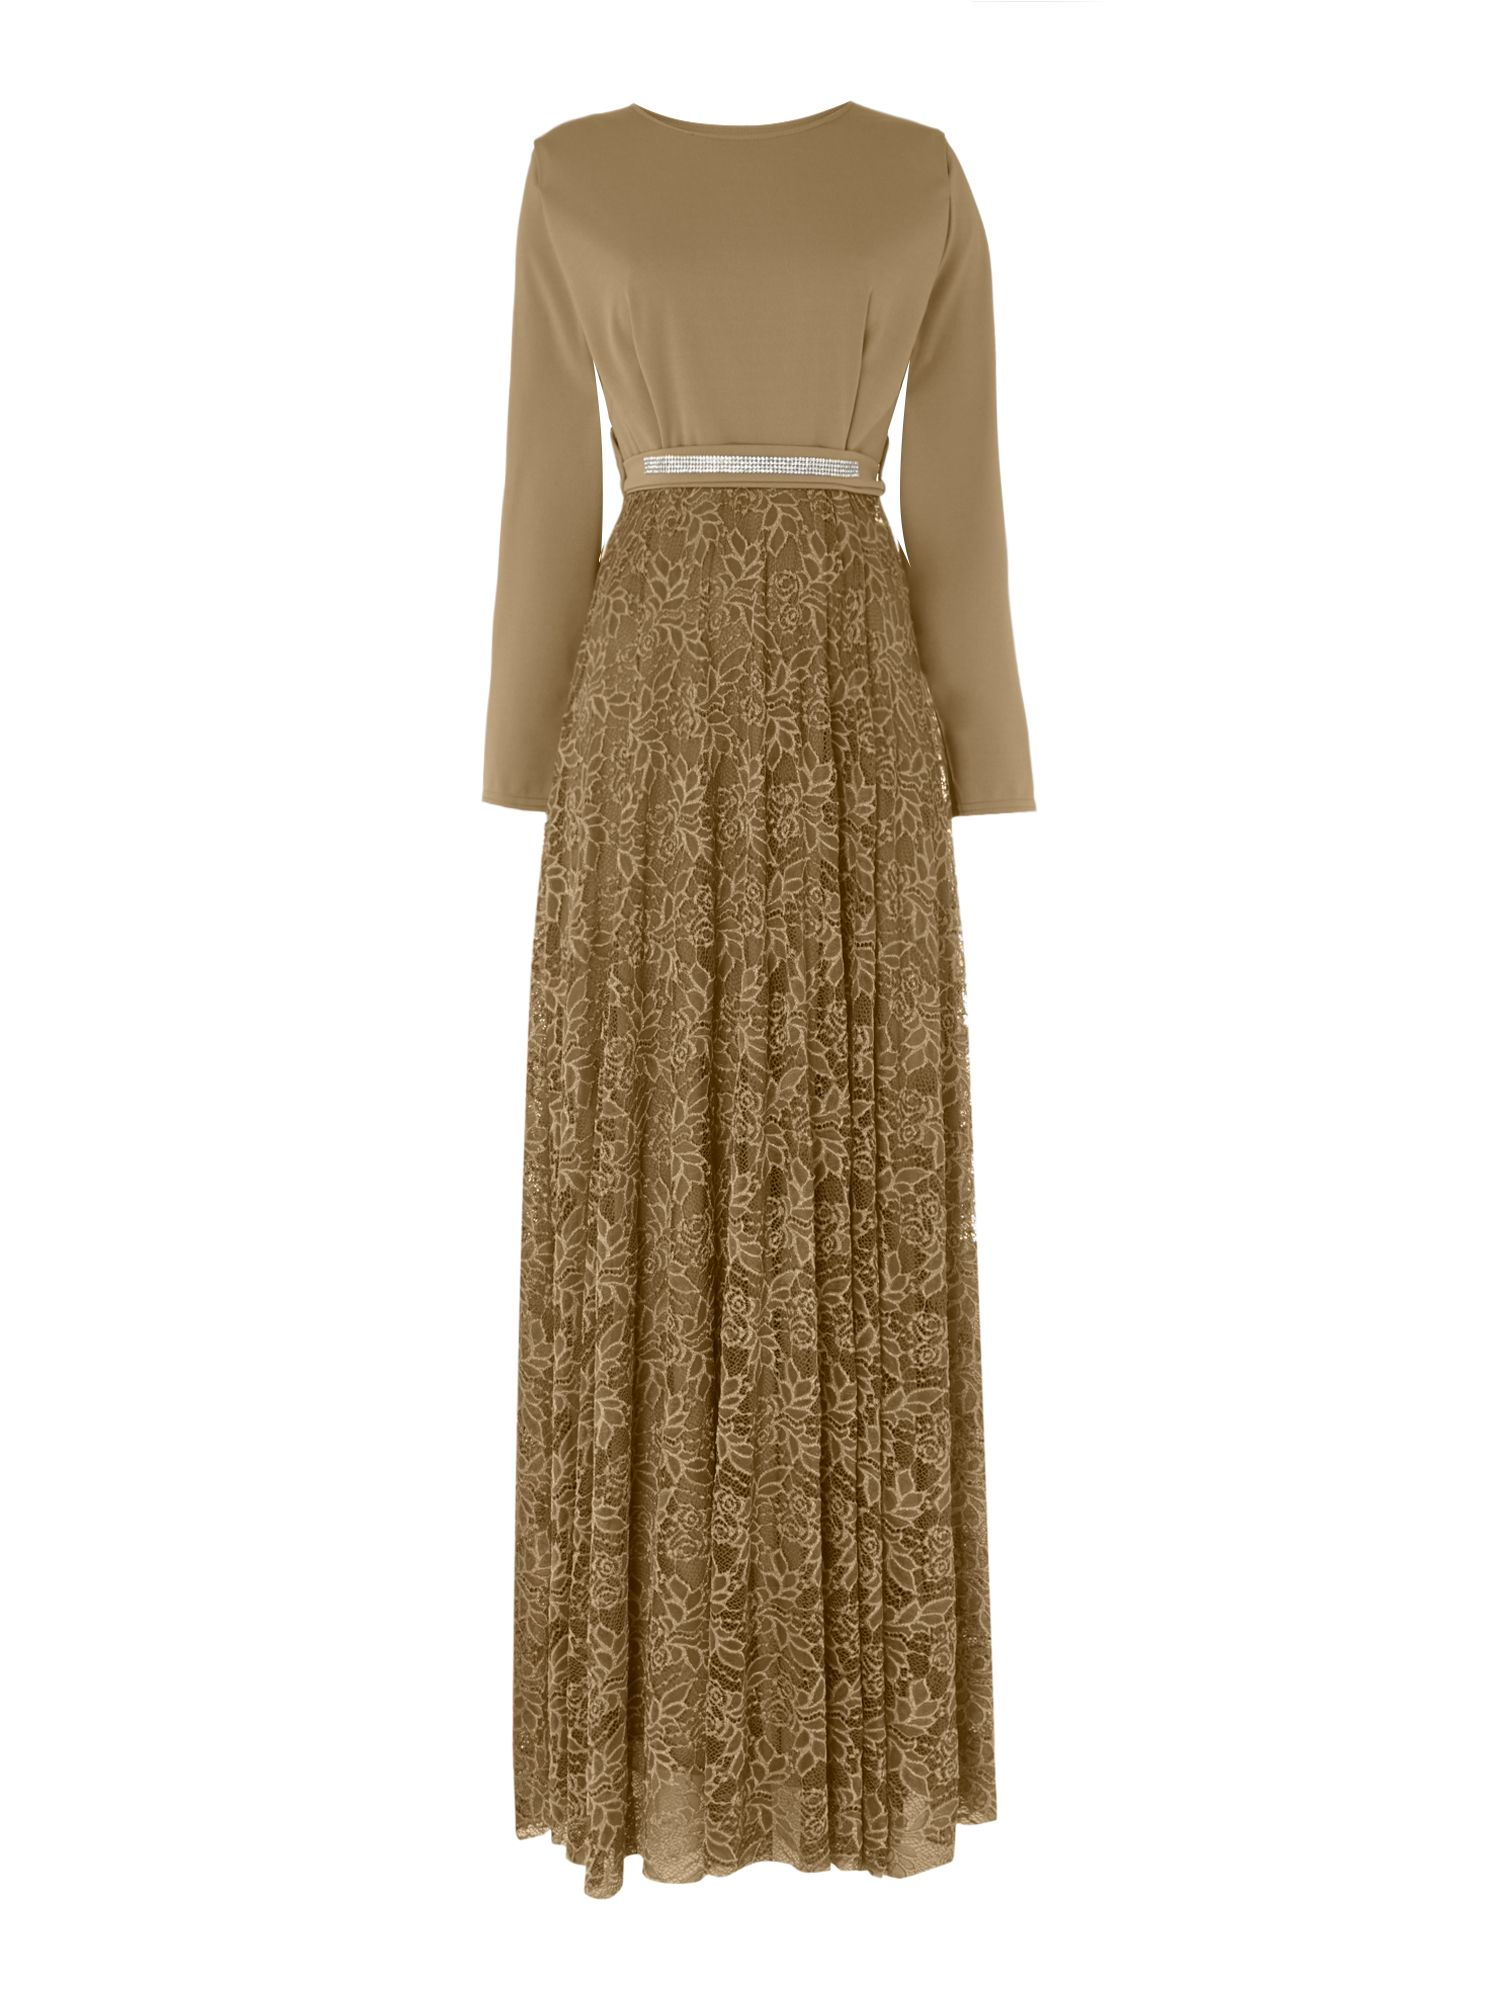 Shorso Diamante Lace Maxi Dress, Almond Cream